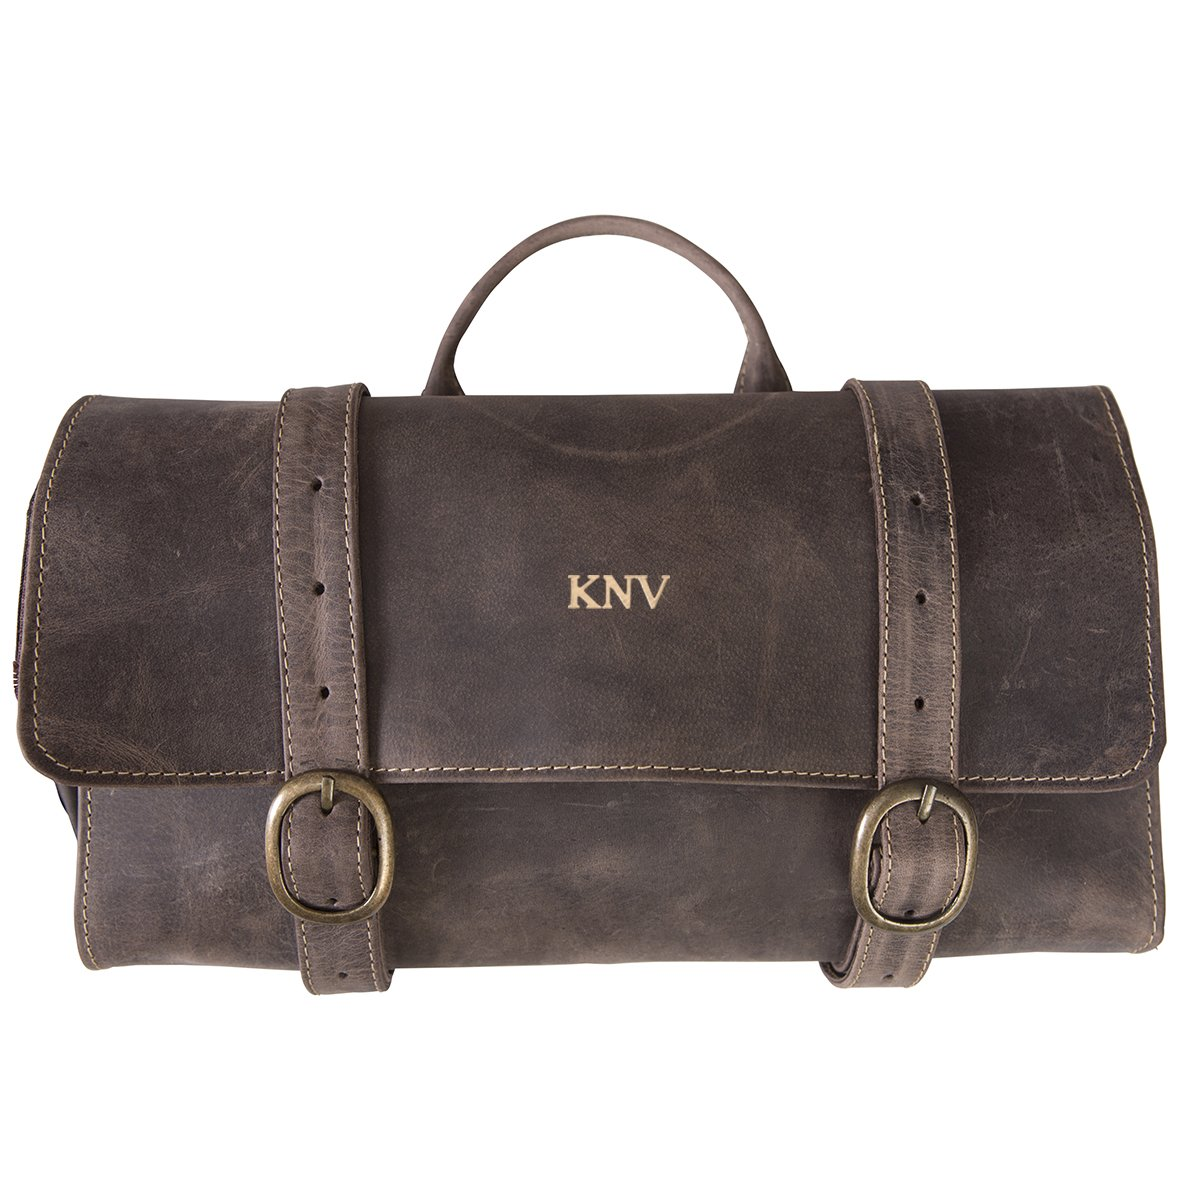 Personalized Distressed Brown Leather Hanging Men's Travel Toiletry Bag - Gold